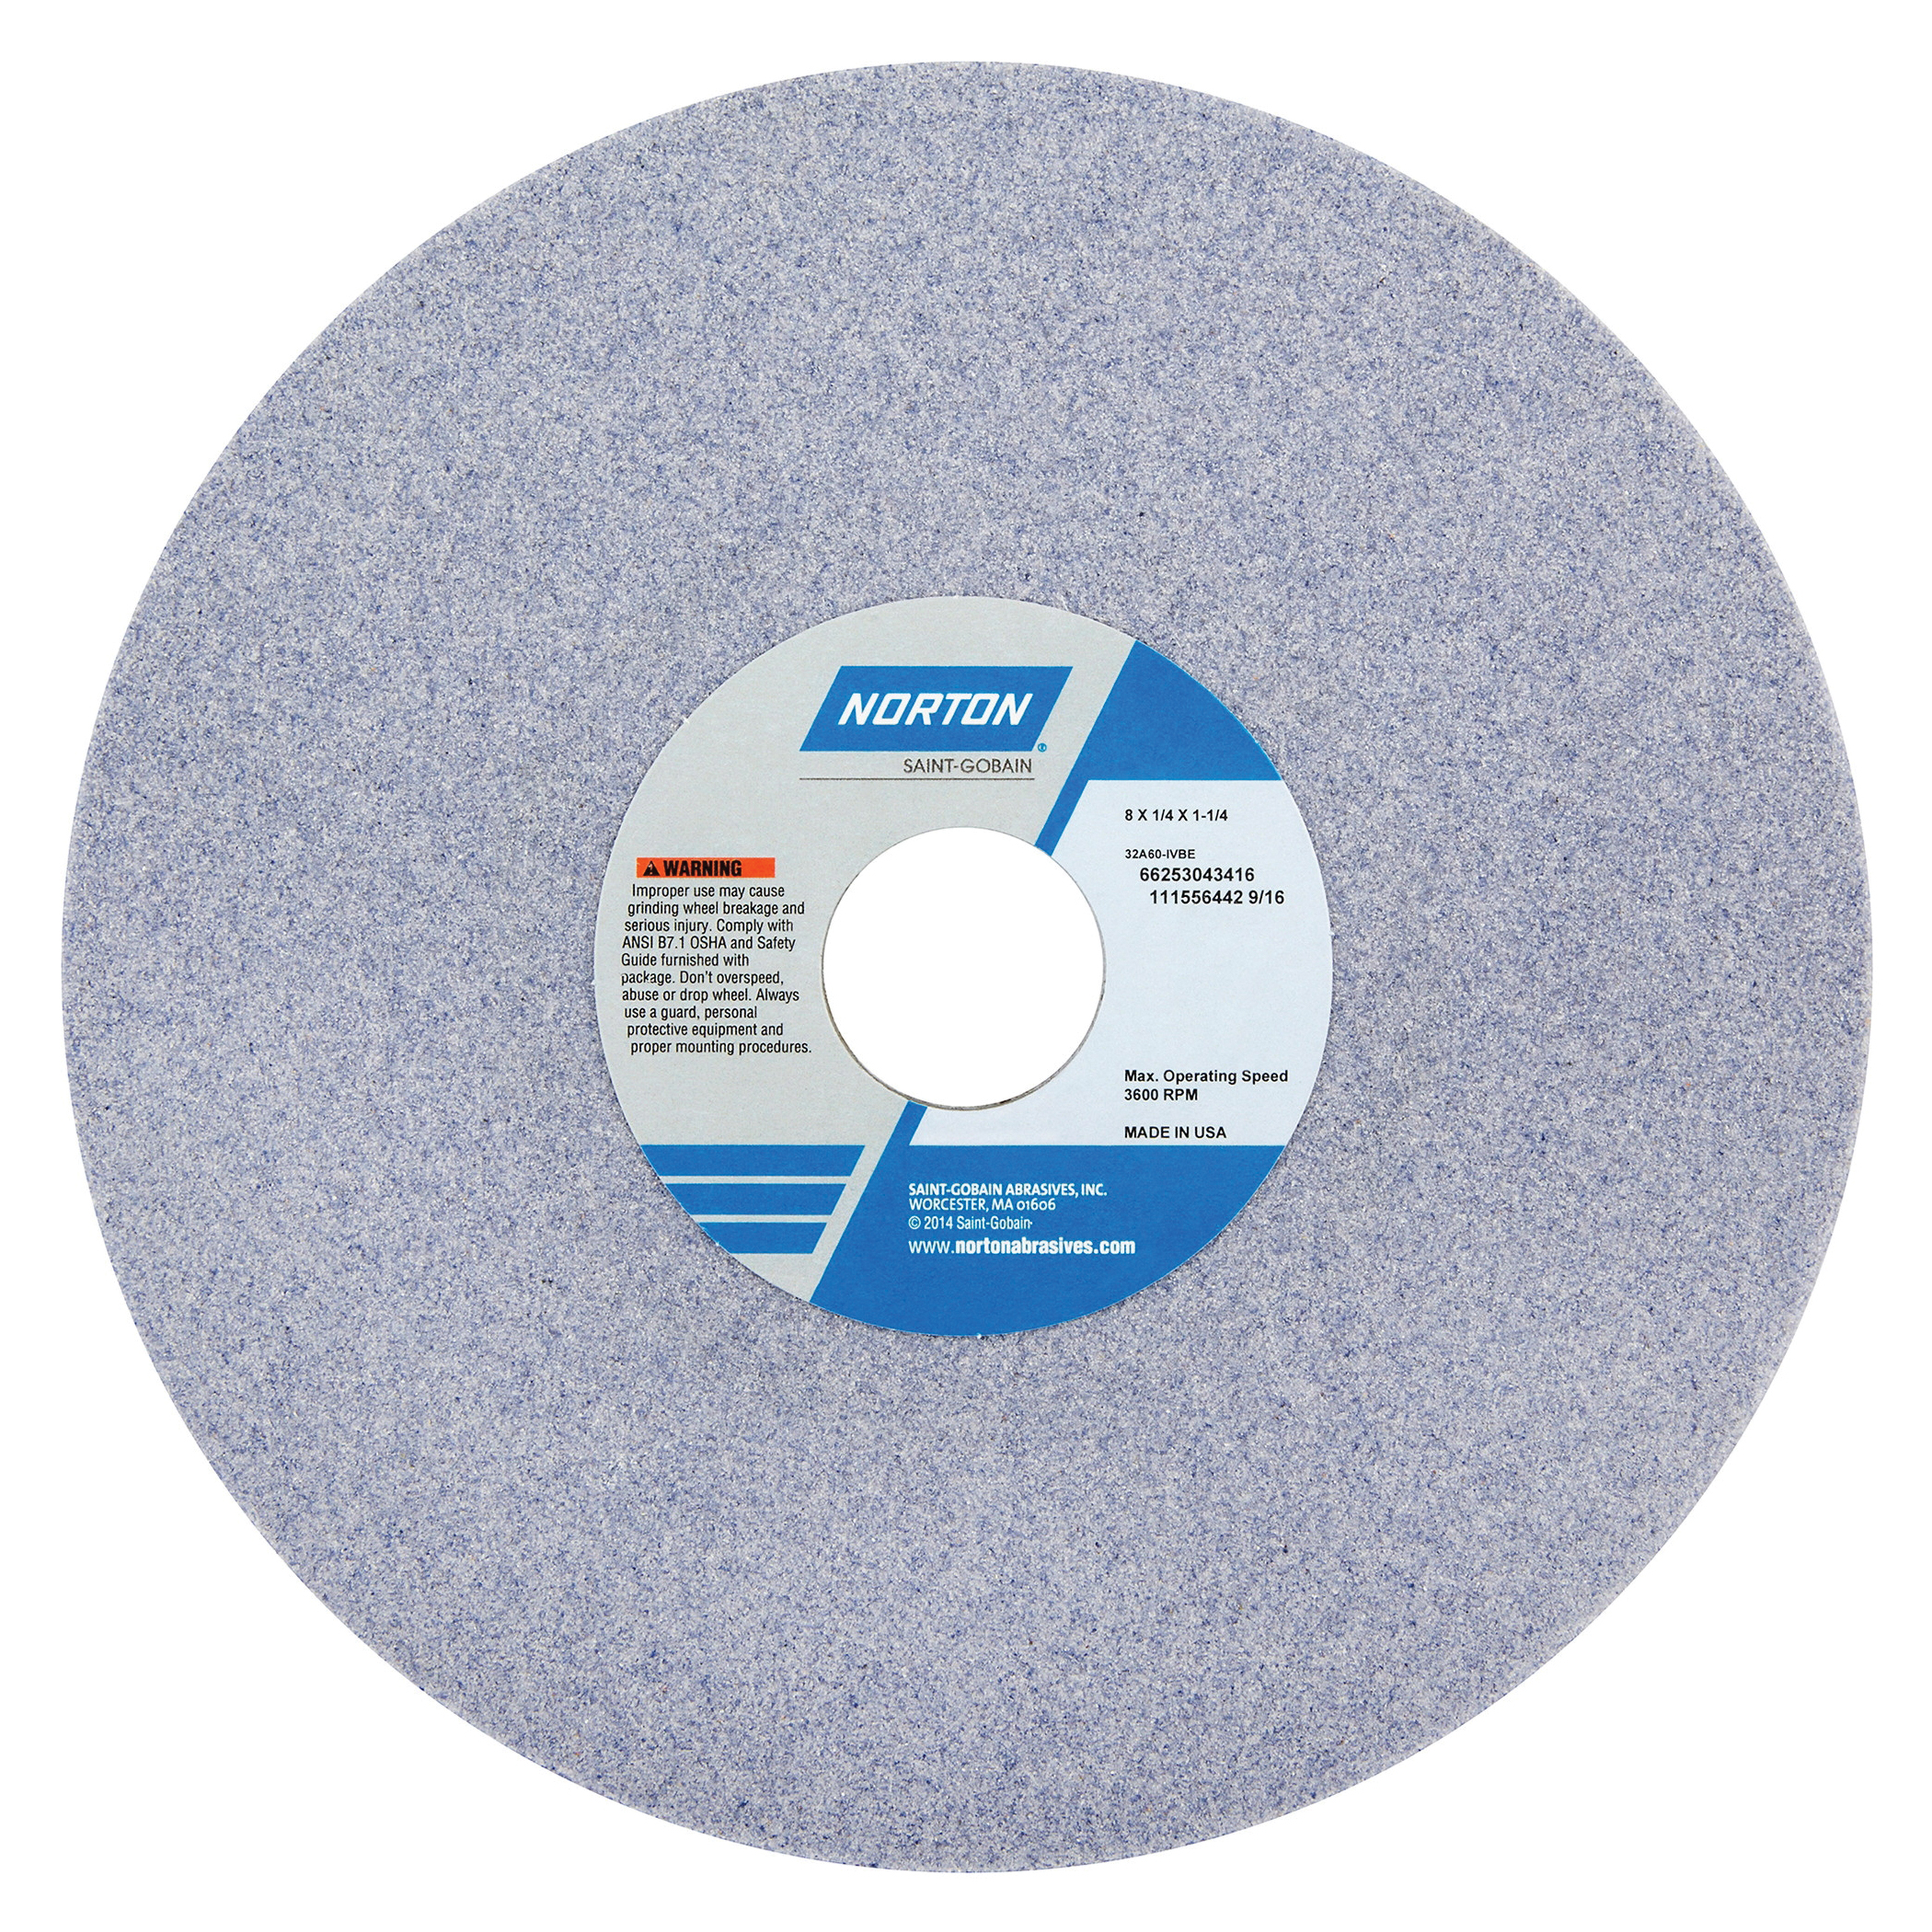 Norton® 66253043310 32A Straight Toolroom Wheel, 8 in Dia x 1/4 in THK, 1-1/4 in Center Hole, 46 Grit, Aluminum Oxide Abrasive